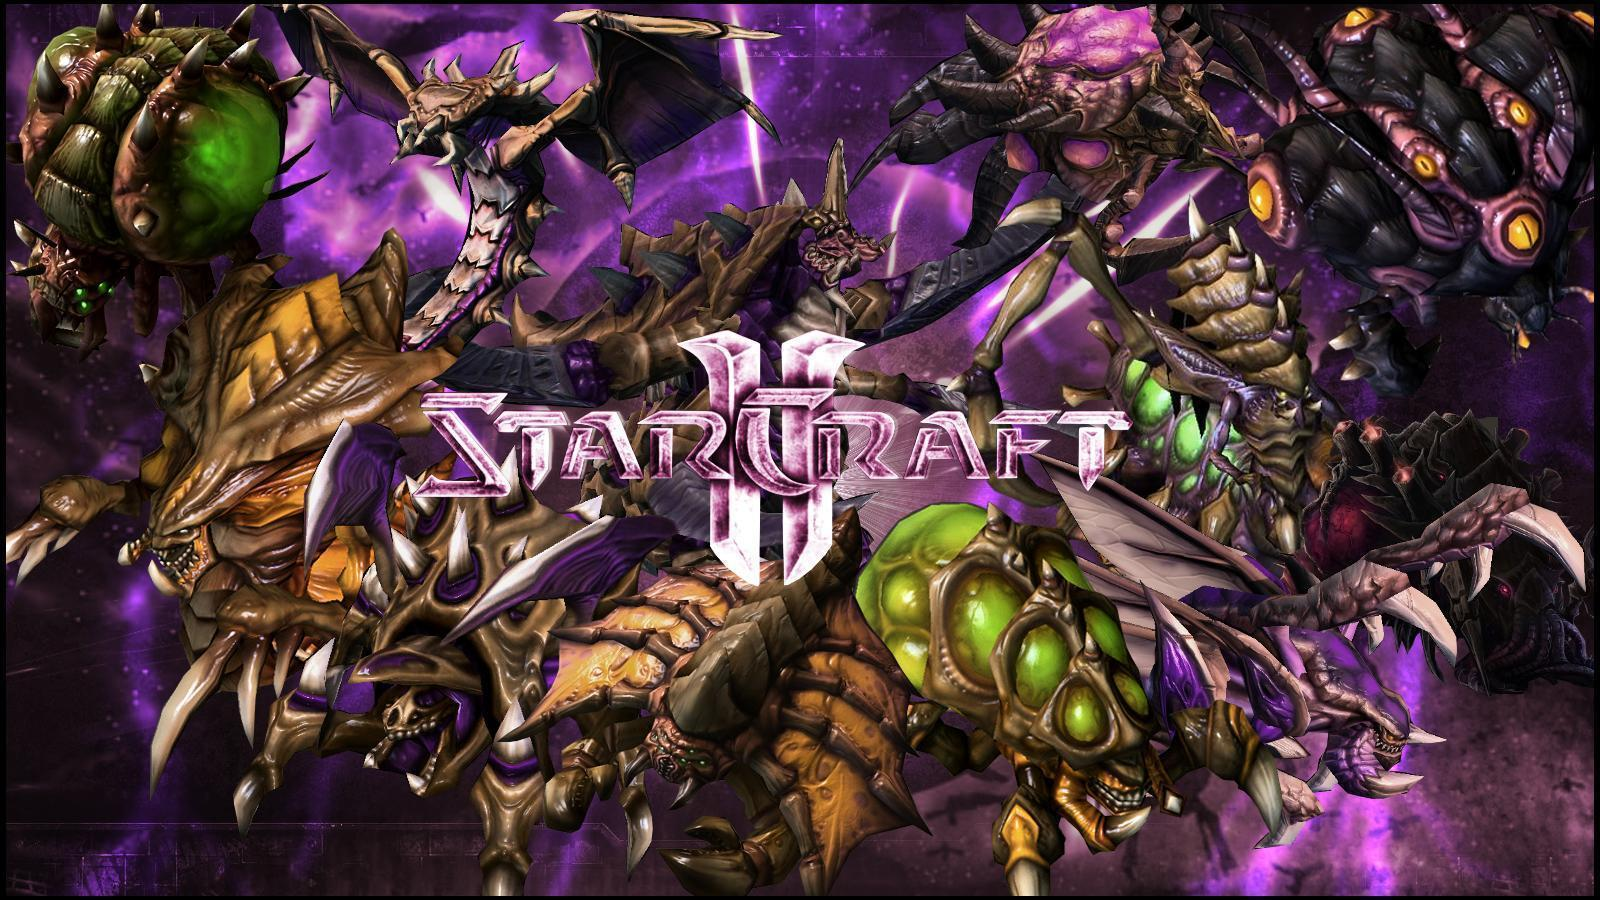 zerg starcraft wallpaper 2560x1440 - photo #34